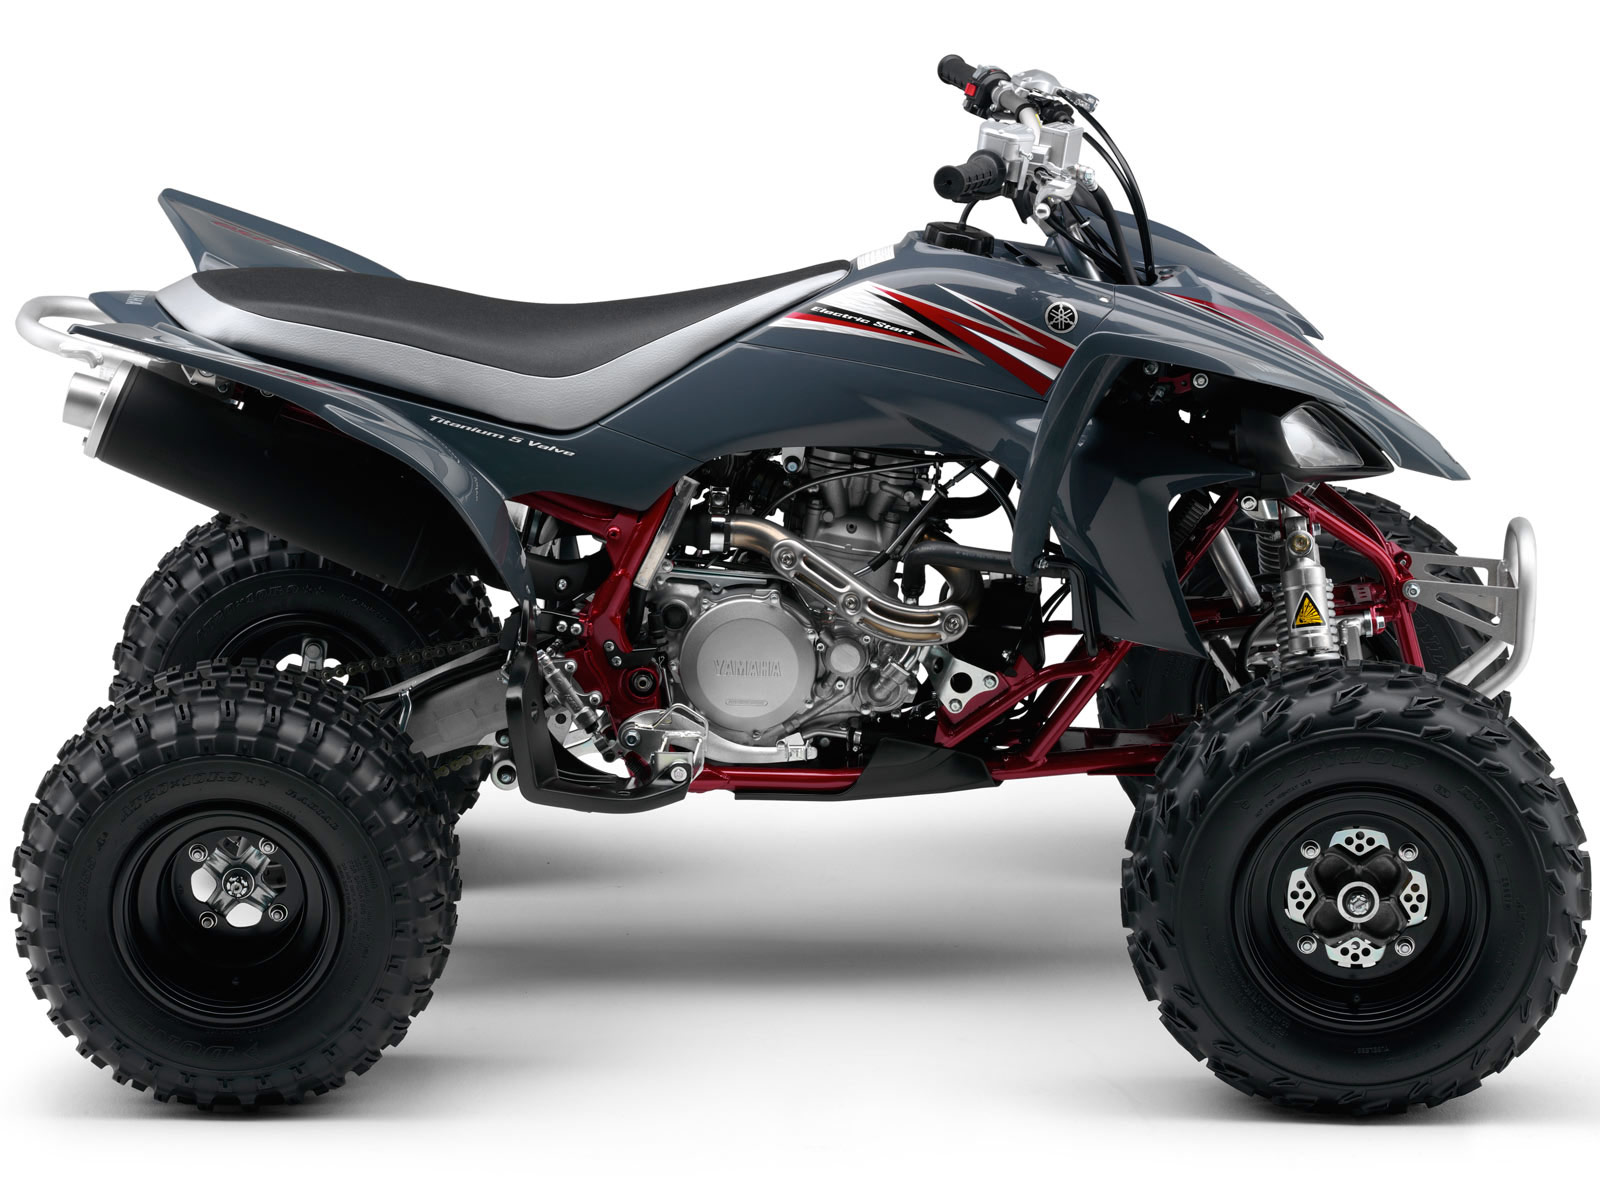 2008 YAMAHA YFZ 450 ATV pictures Wallpapers 1600x1200